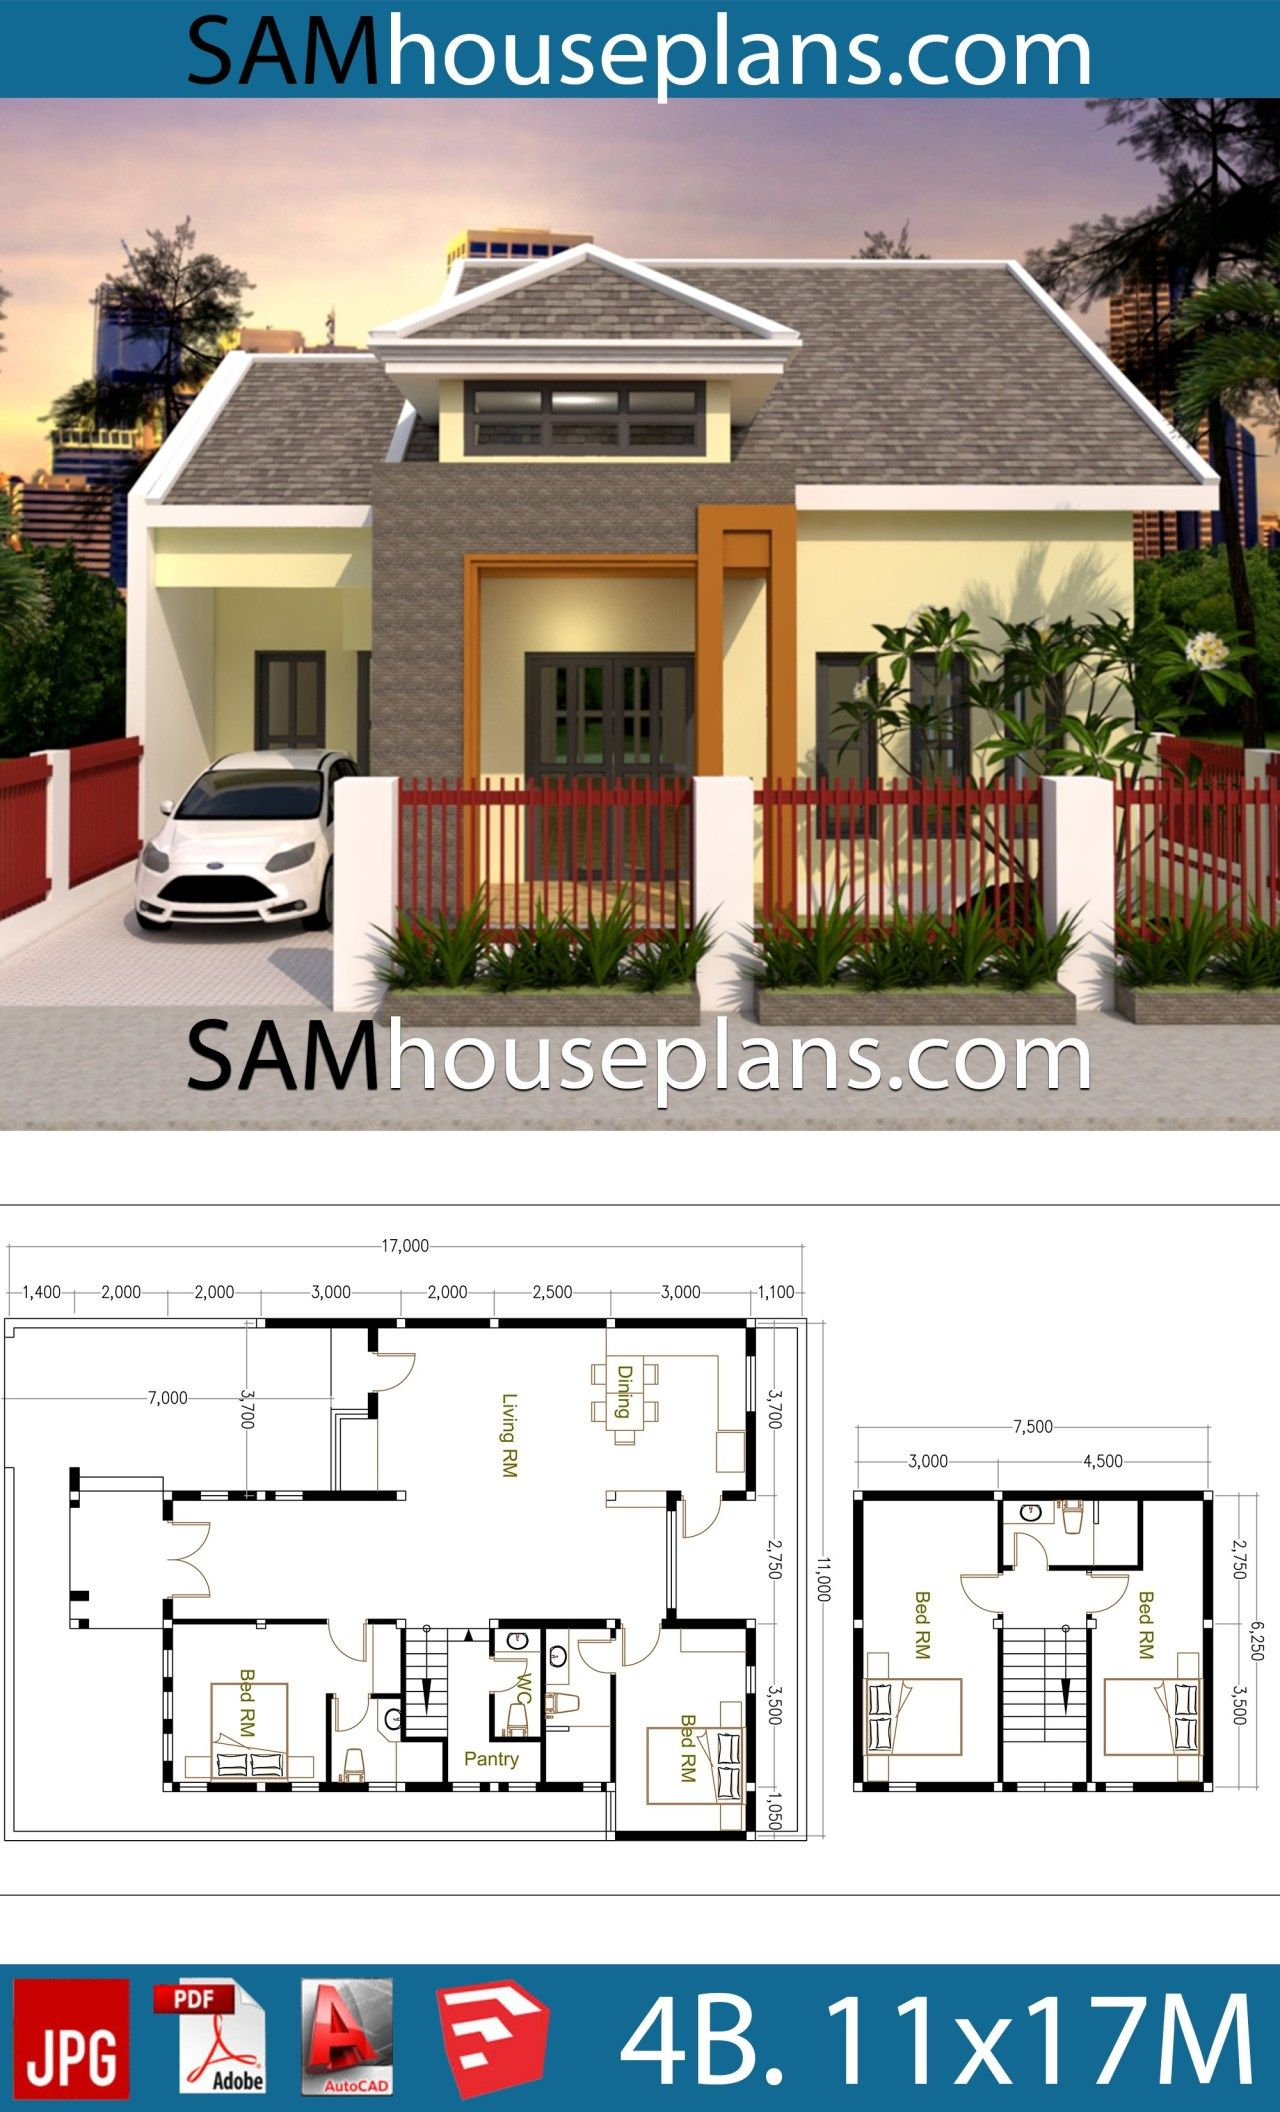 House Plans 11x17 with 4 Bedrooms in 2020 | House plans ...